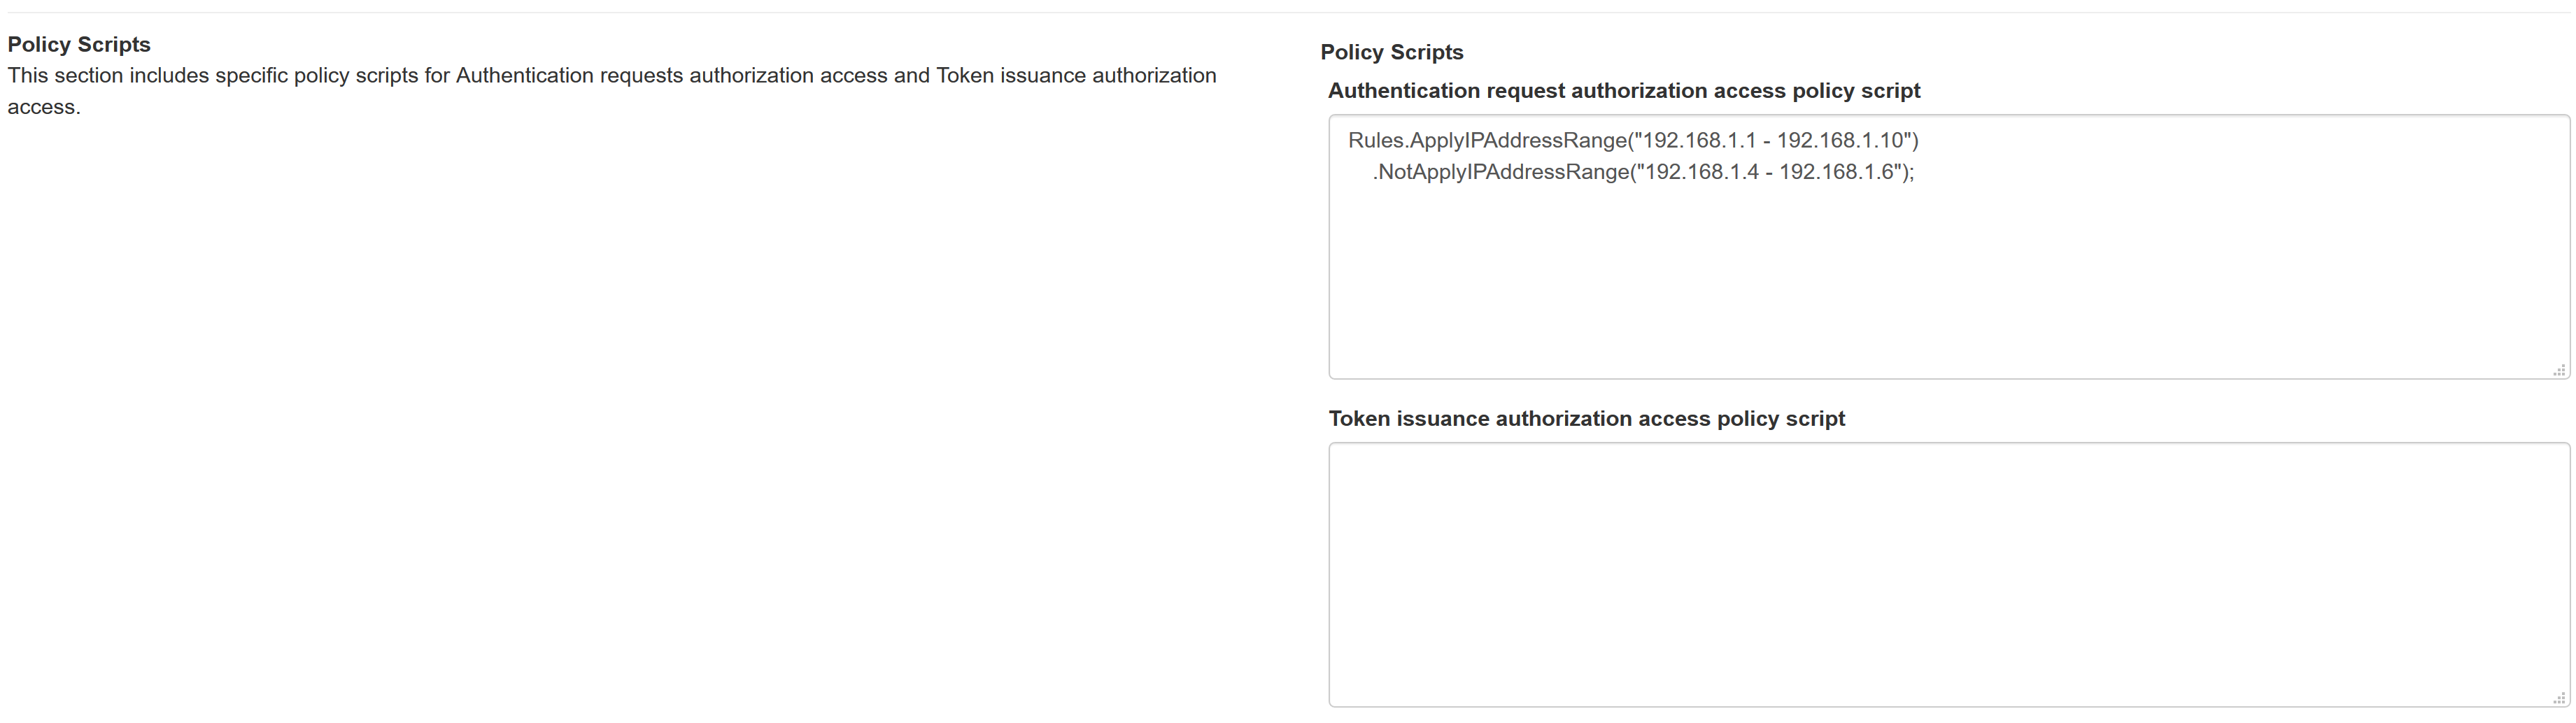 authentication requests and Token issuance access policy scripts